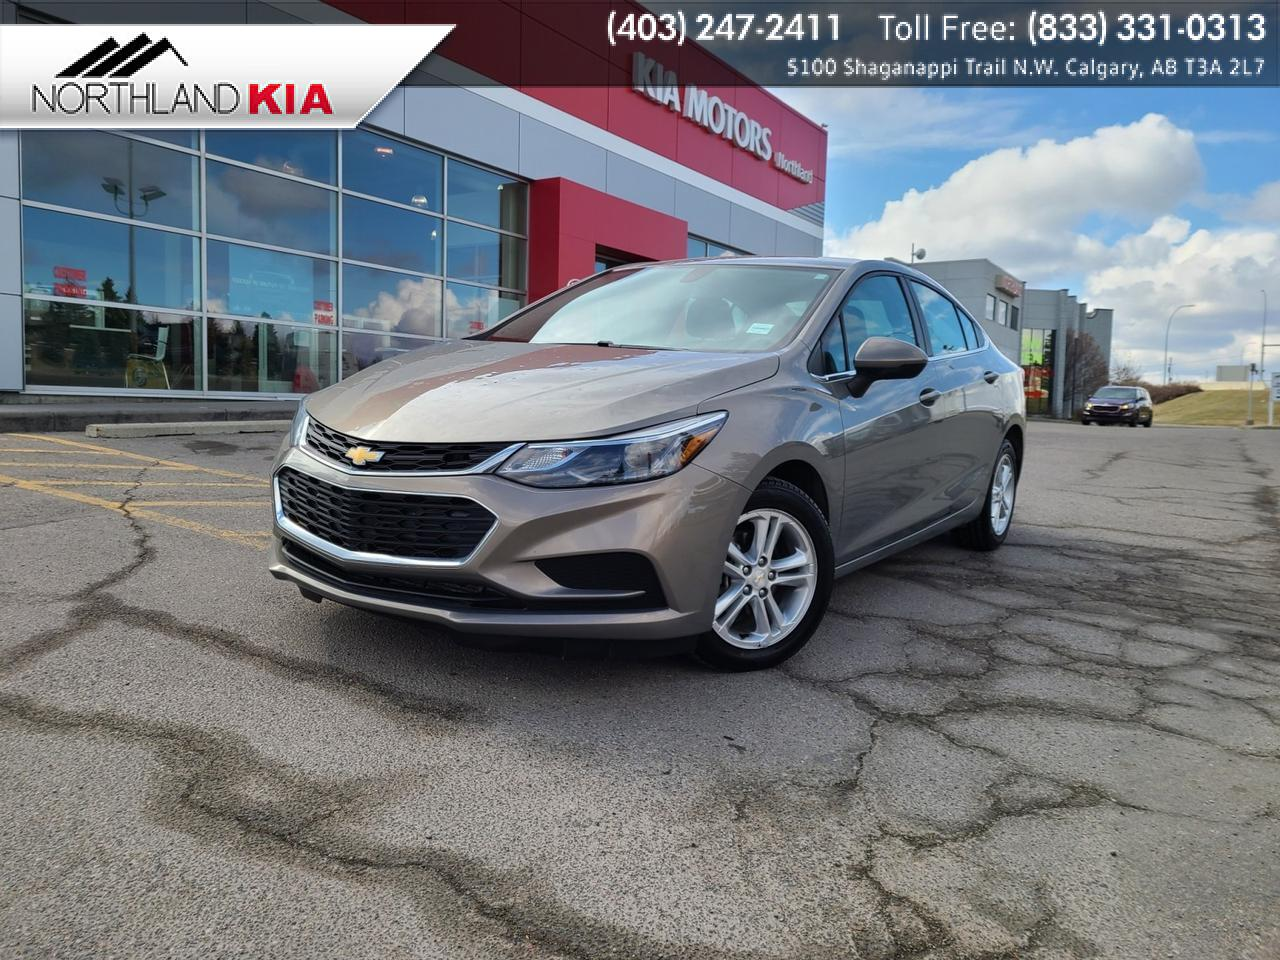 2017 Chevrolet Cruze LT HEATED SEATS, BACKUP CAMERA Calgary AB